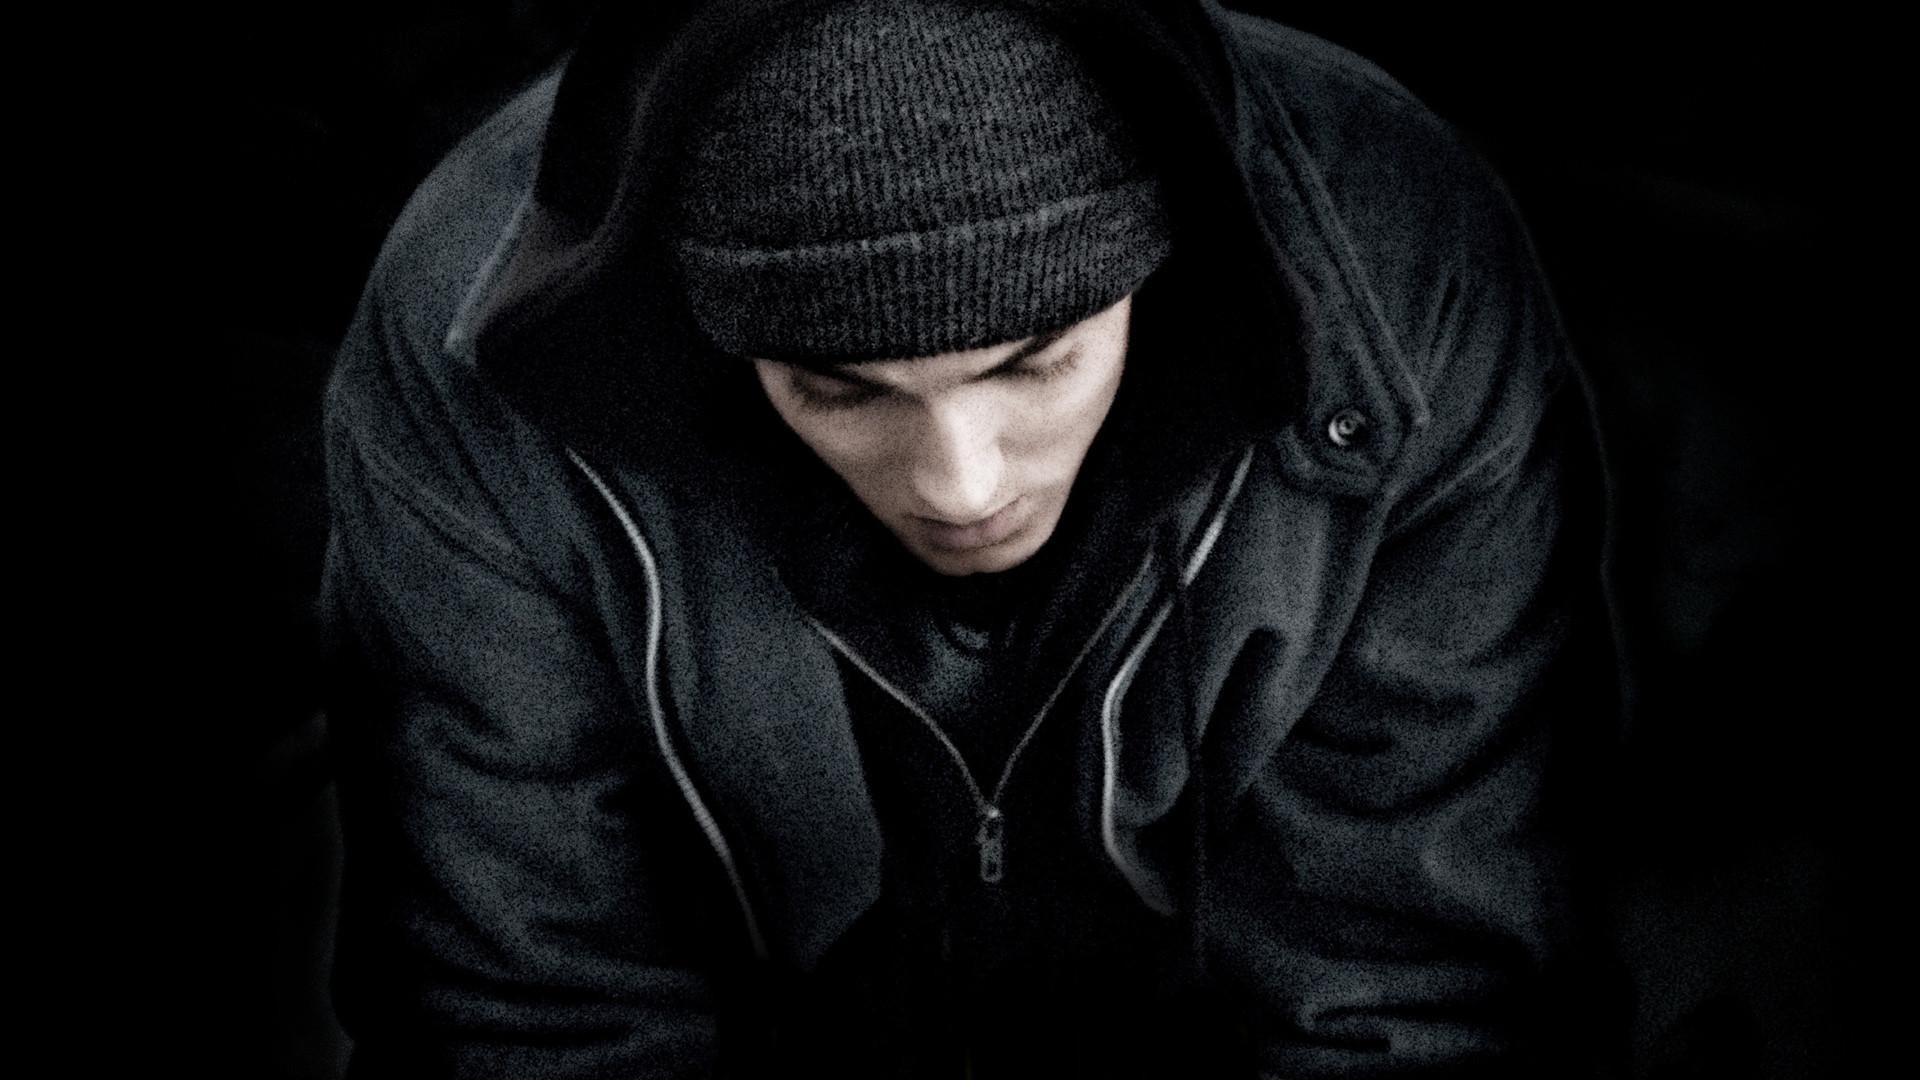 eminem wallpapers - photo #13